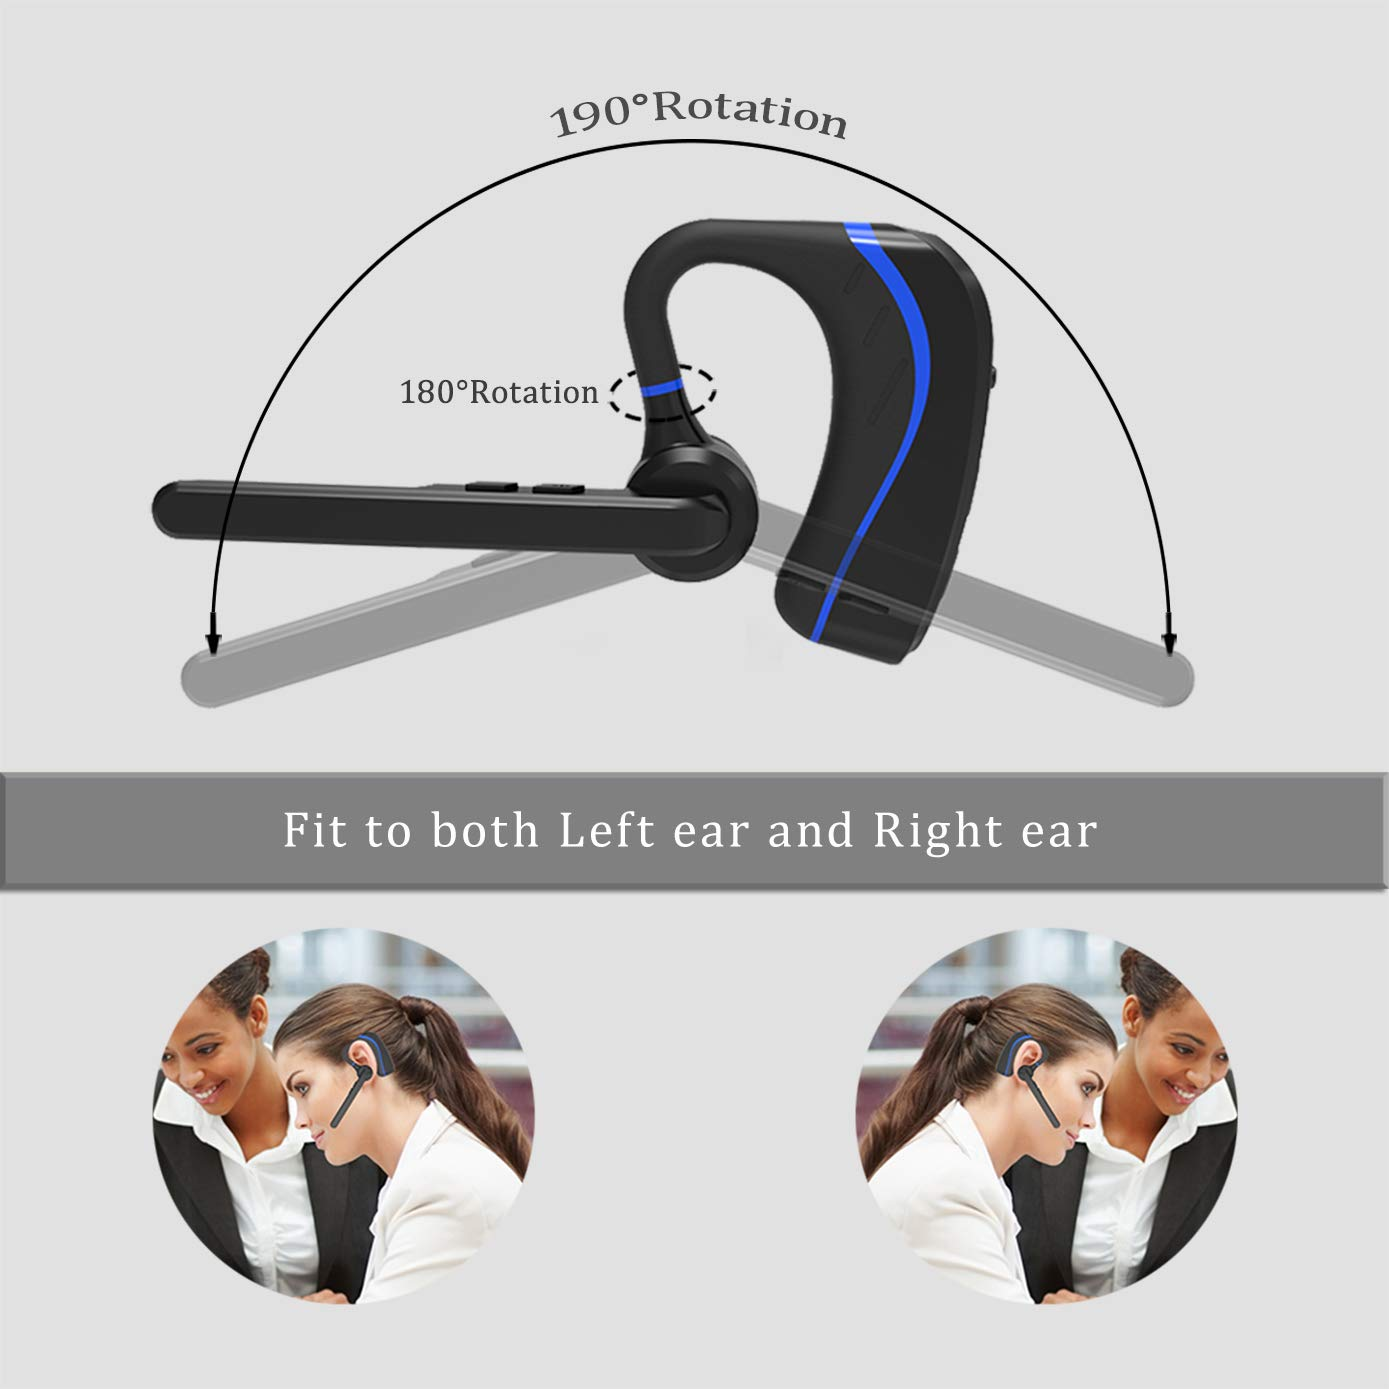 Amazon.com: Bluetooth Headset, HandsFree Wireless Bluetooth Earpiece V4.1 Single Ear Noise Cancelling Mic Cell Phones Compatible with iPhone, ...